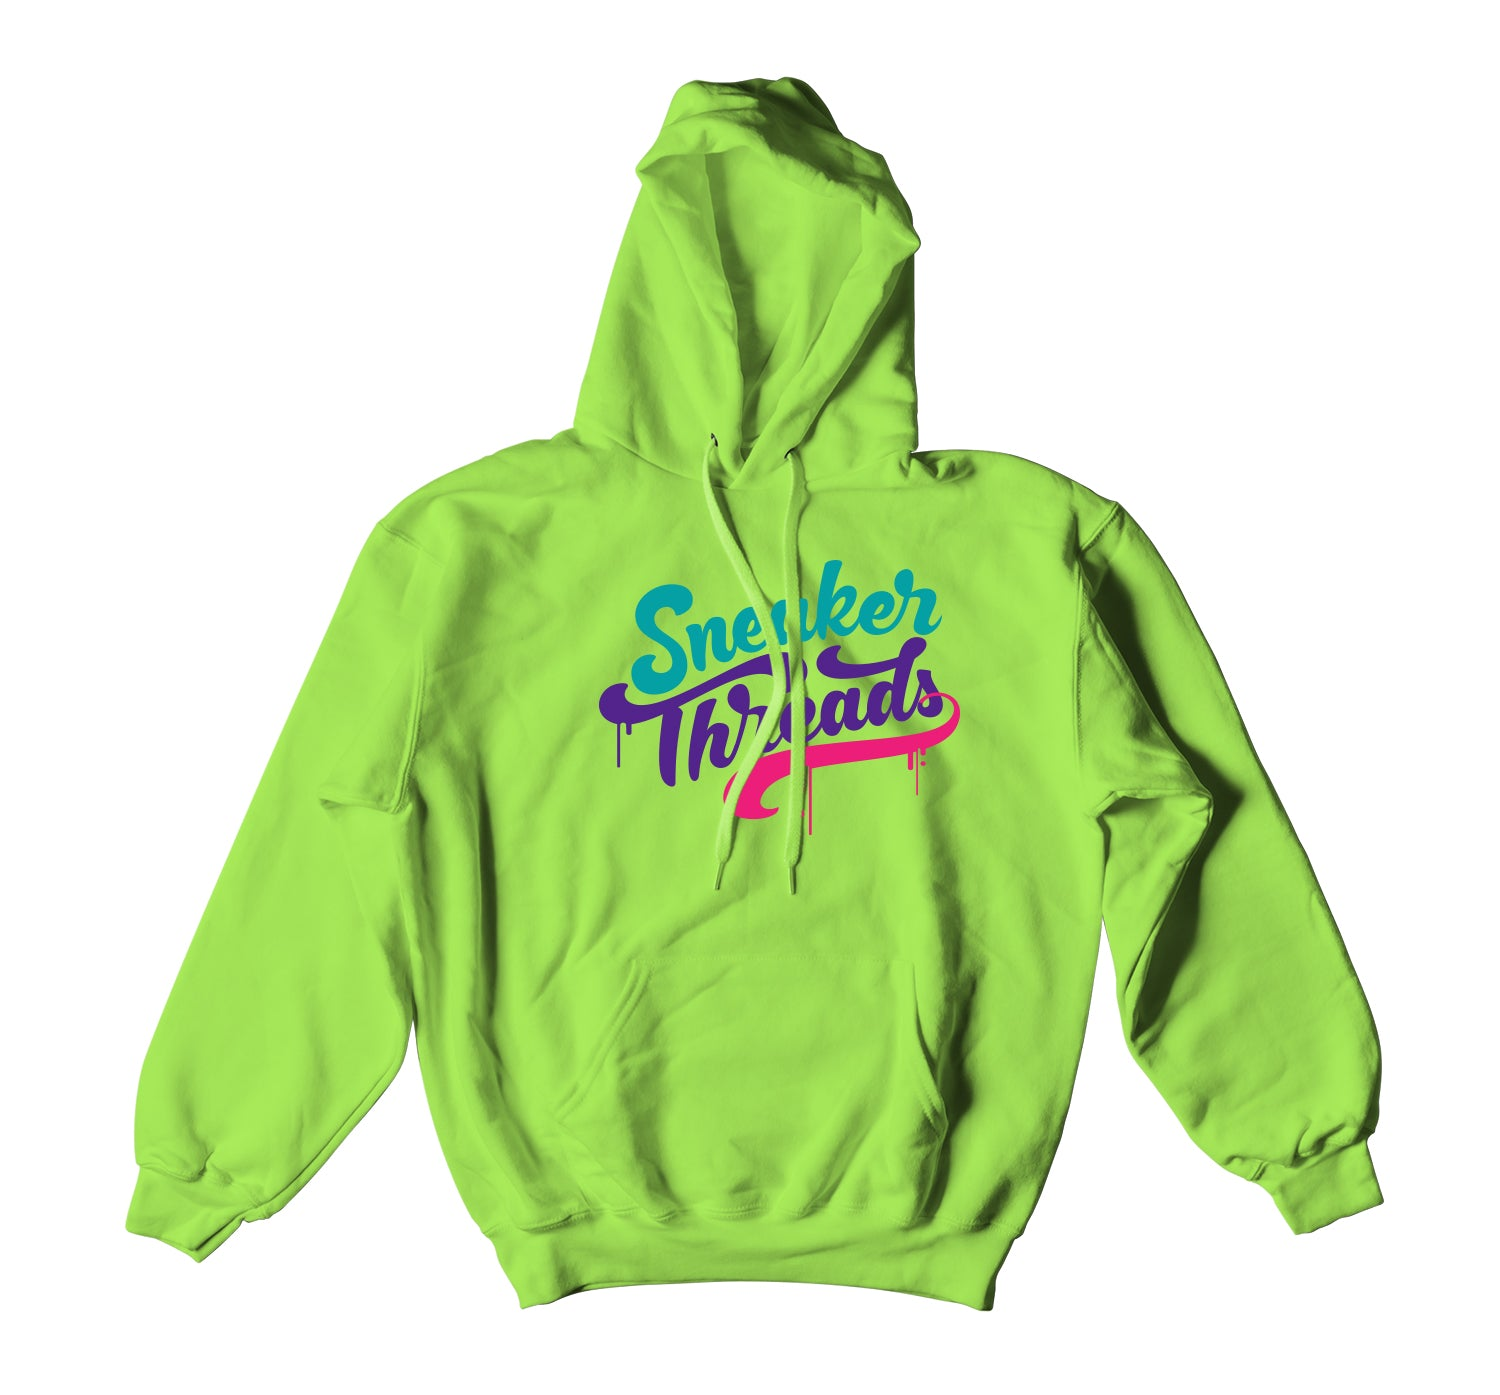 All Star 2020 Swackhammer ST Drip Hoody